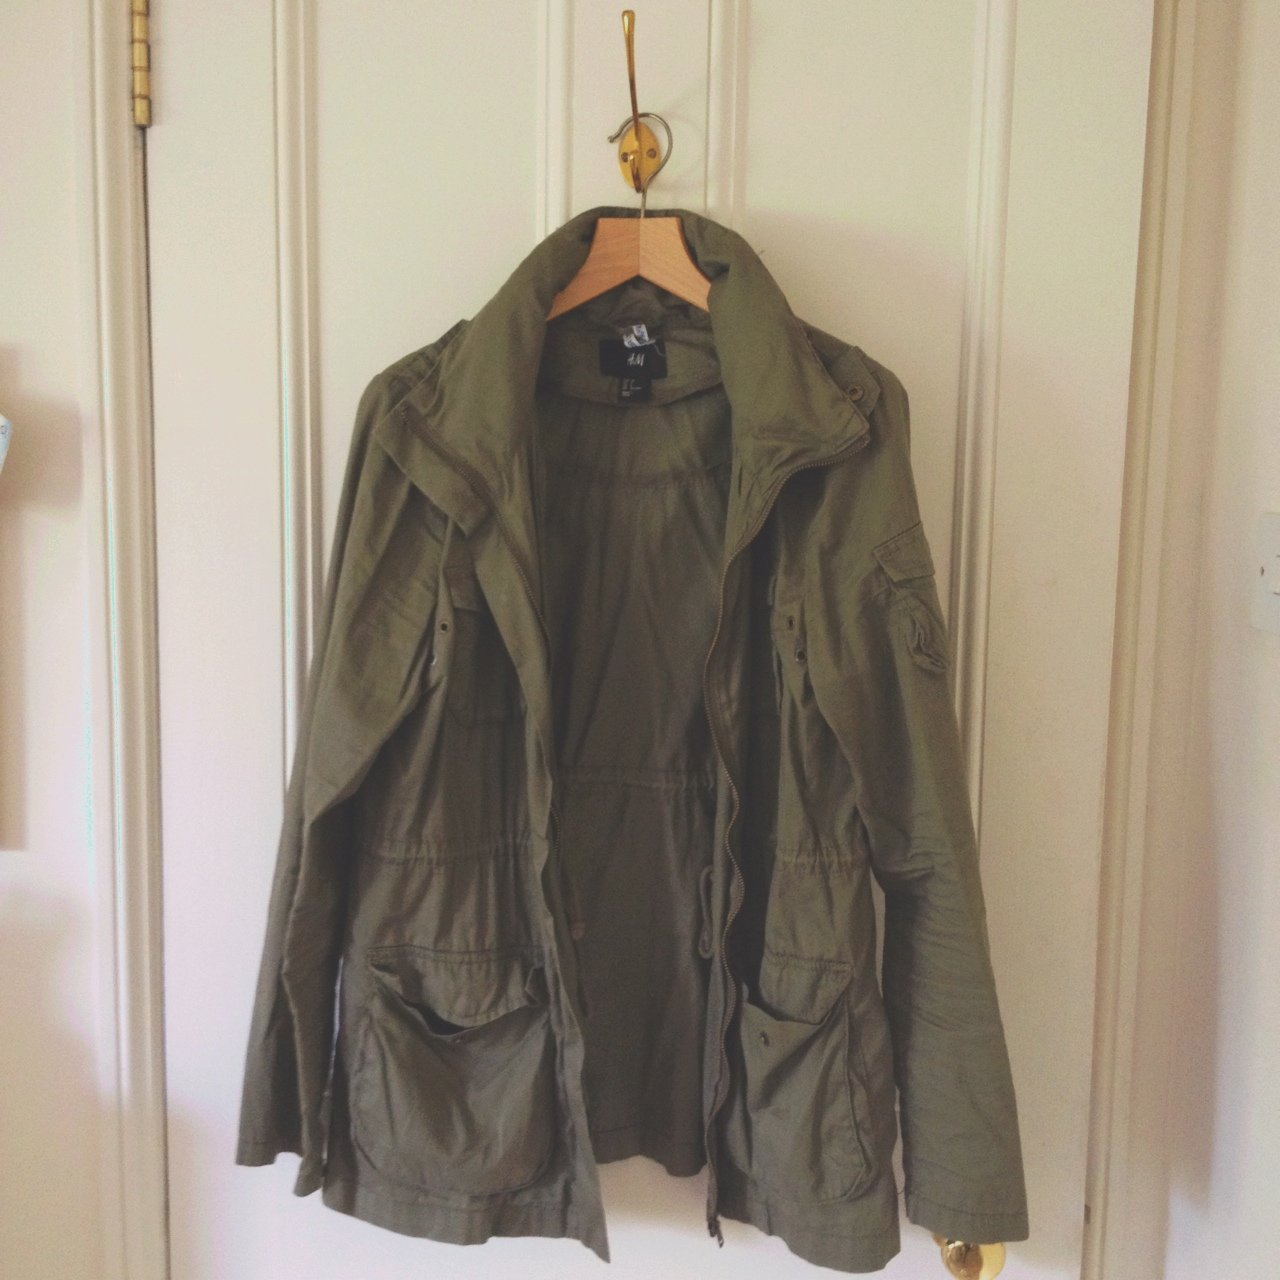 Khaki Army Jacket from H M with hood that can be zipped away - Depop c2459aad9128b